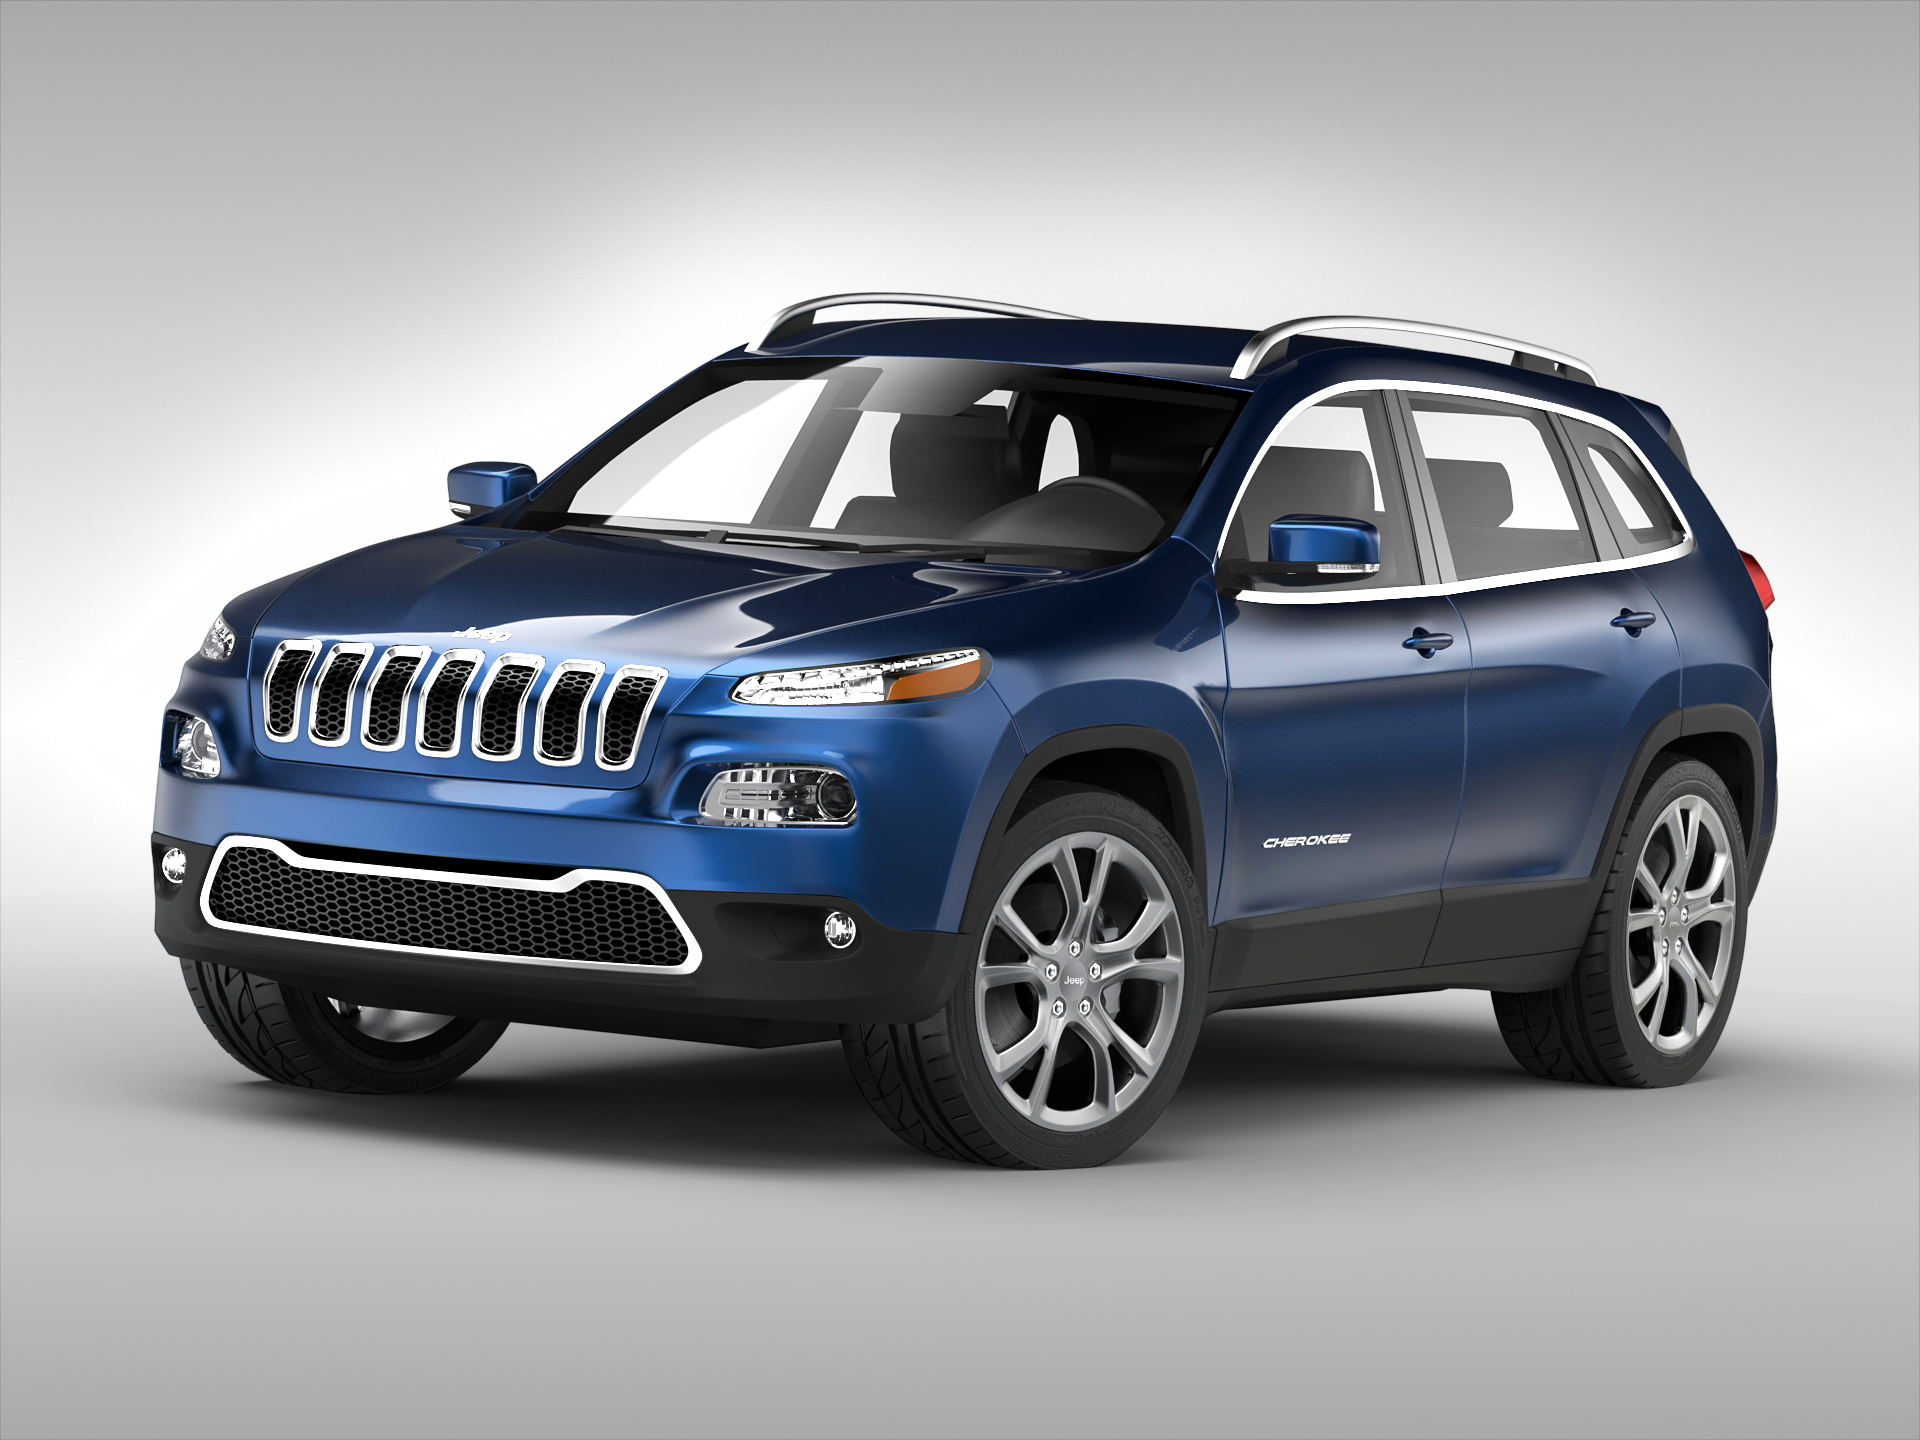 jeep cherokee (2014) 3d model 3ds max fbx obj 213493